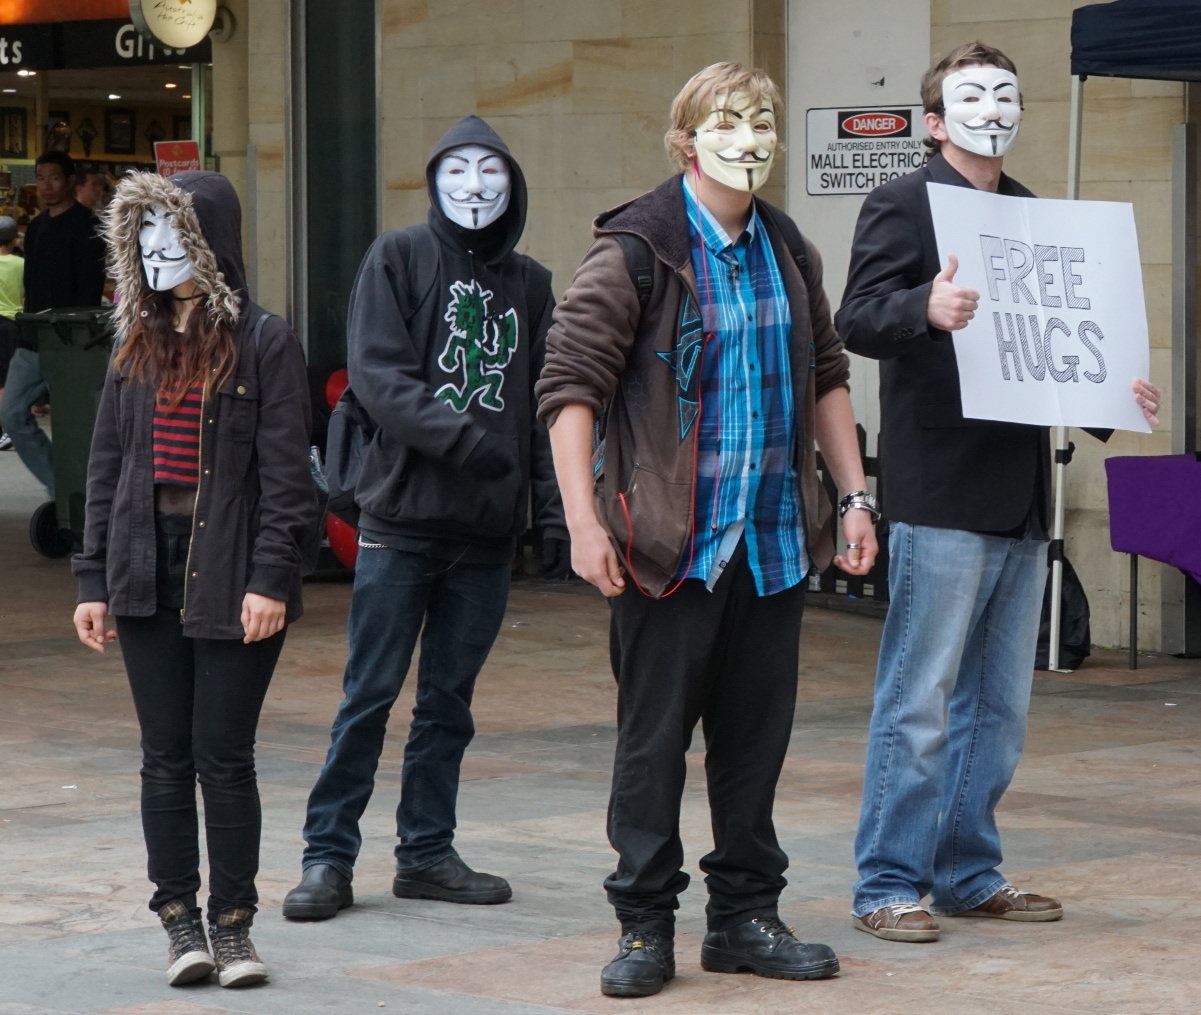 Anonymous Activists in Perth, Australia